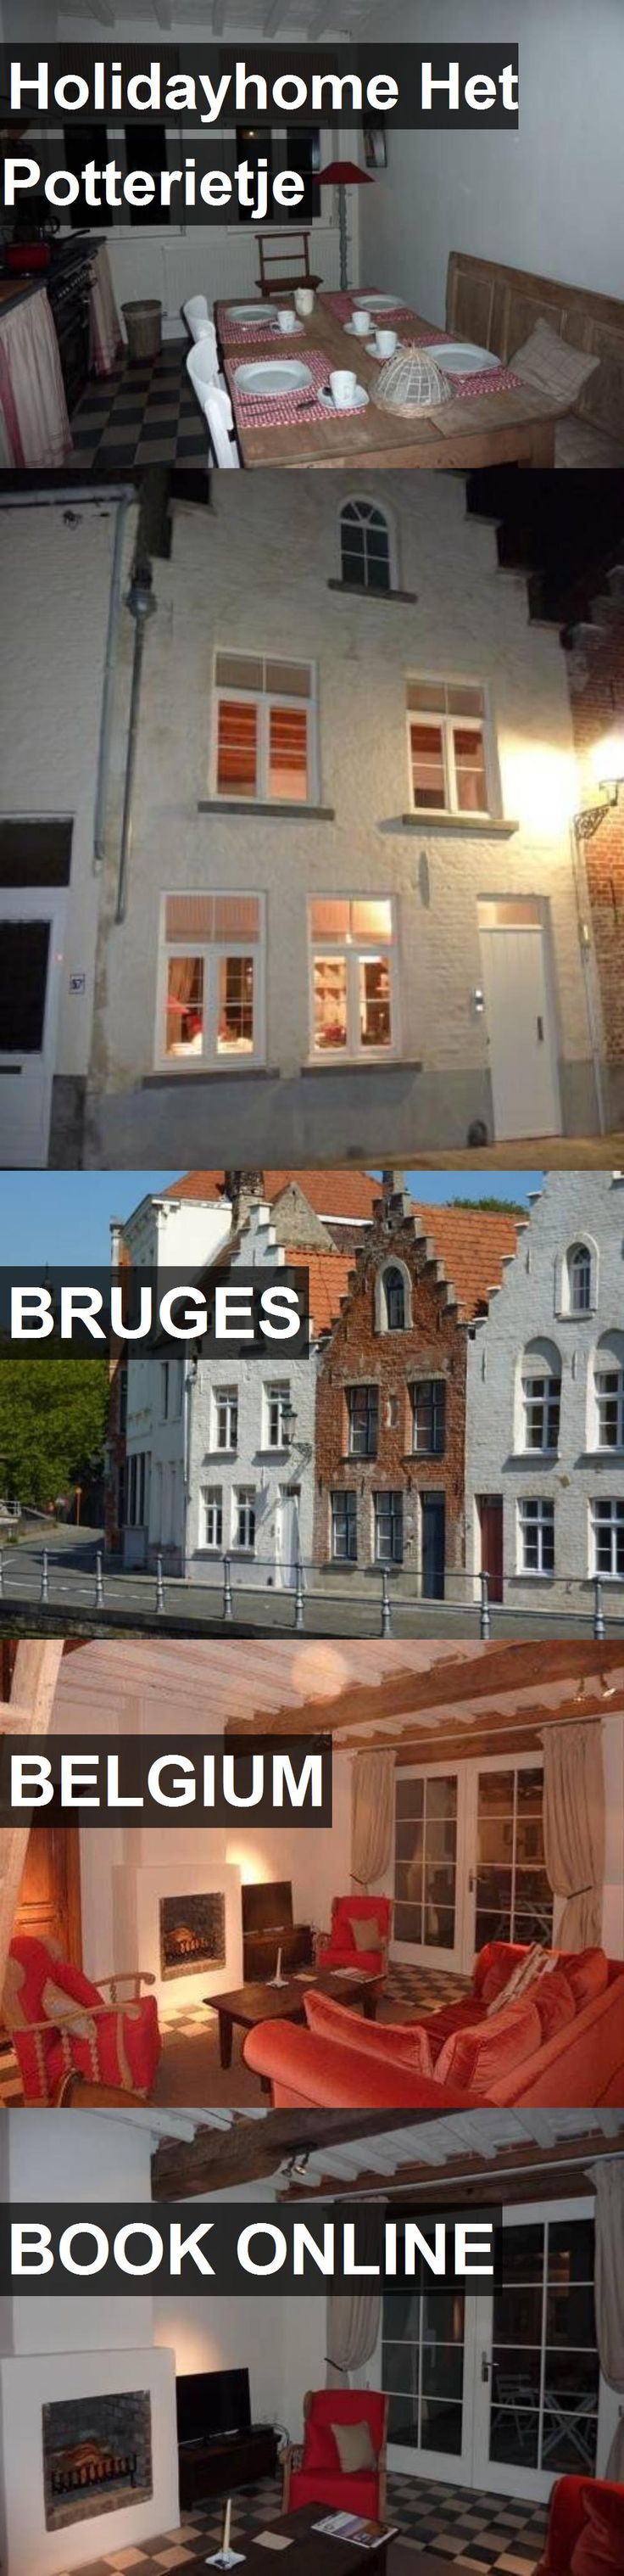 Hotel Holidayhome Het Potterietje in Bruges, Belgium. For more information, photos, reviews and best prices please follow the link. #Belgium #Bruges #travel #vacation #hotel